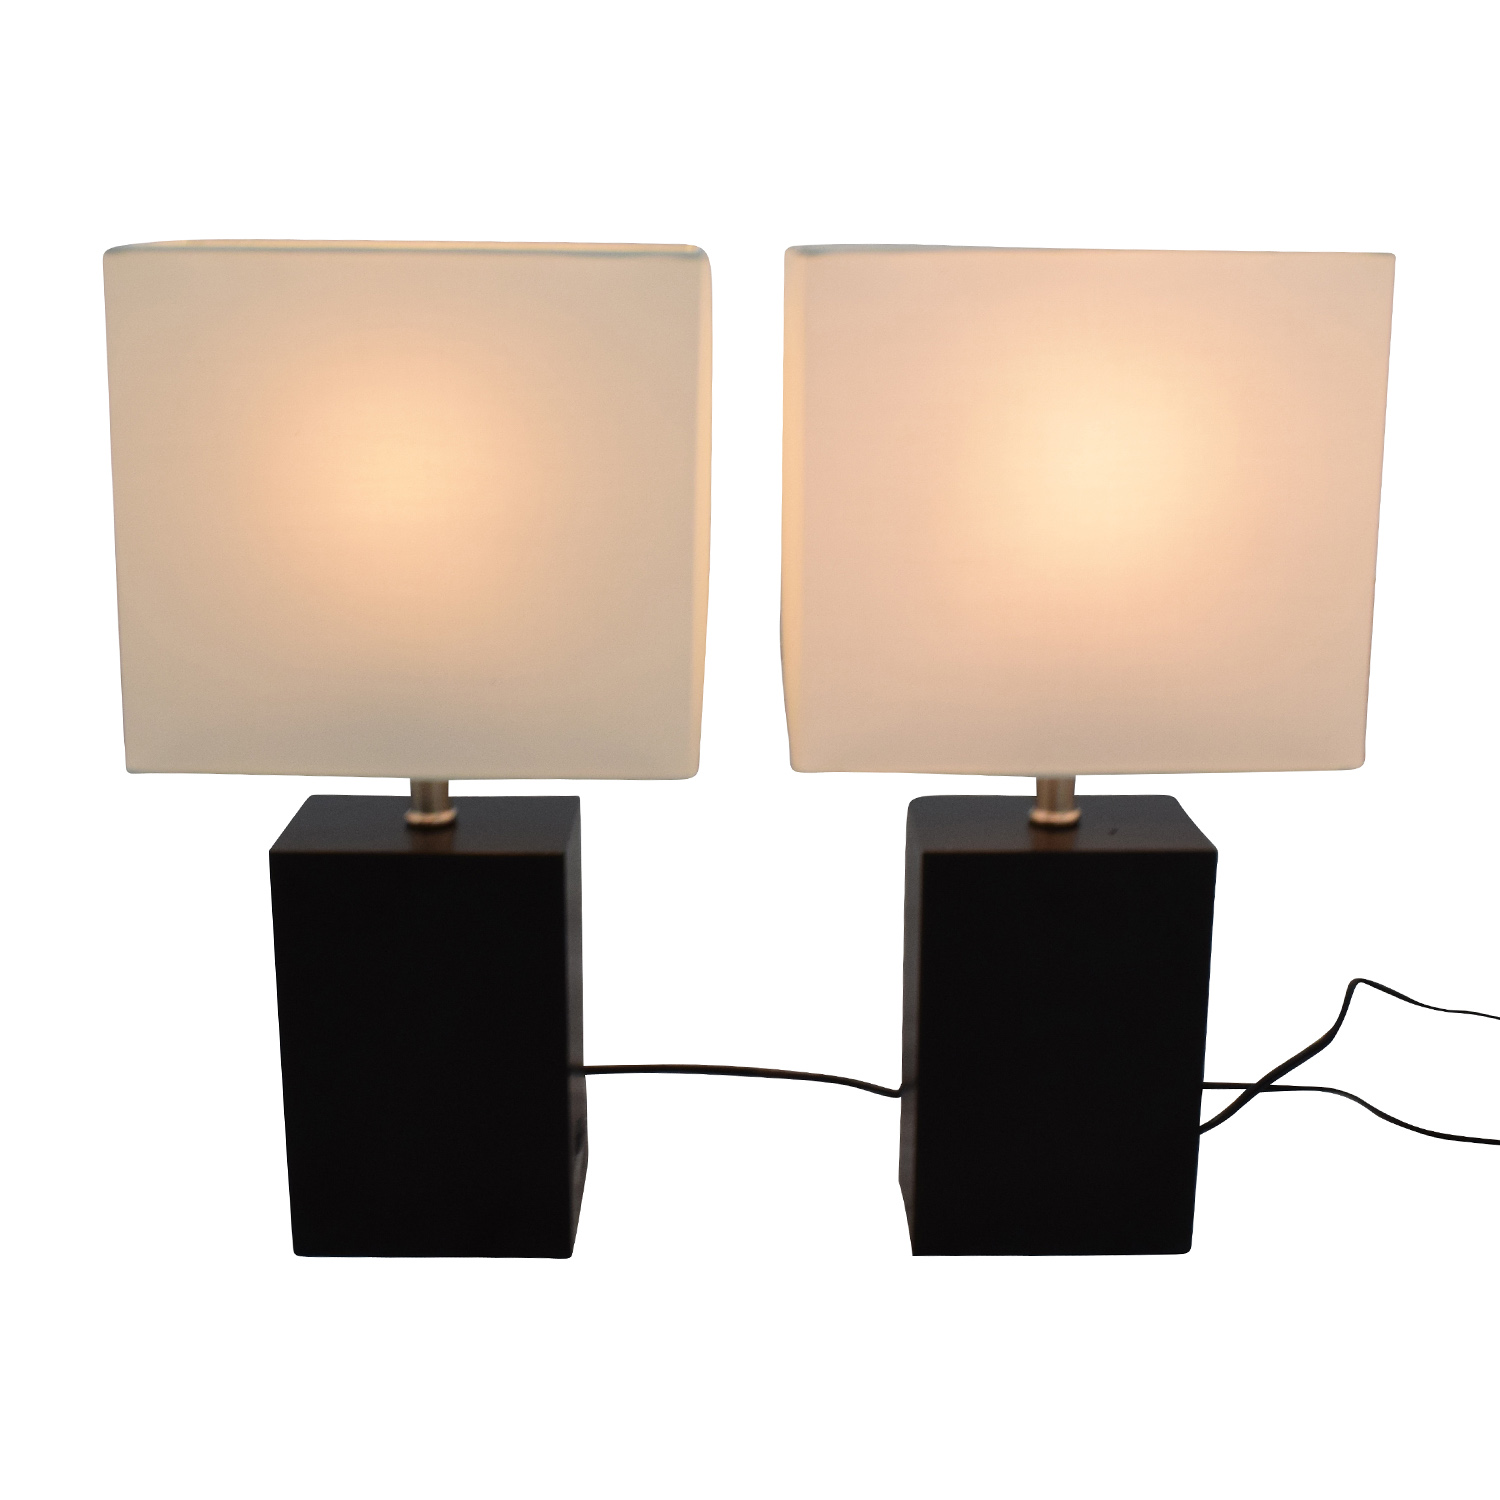 Brightech Brightech Black Wood LED Table Lamps discount